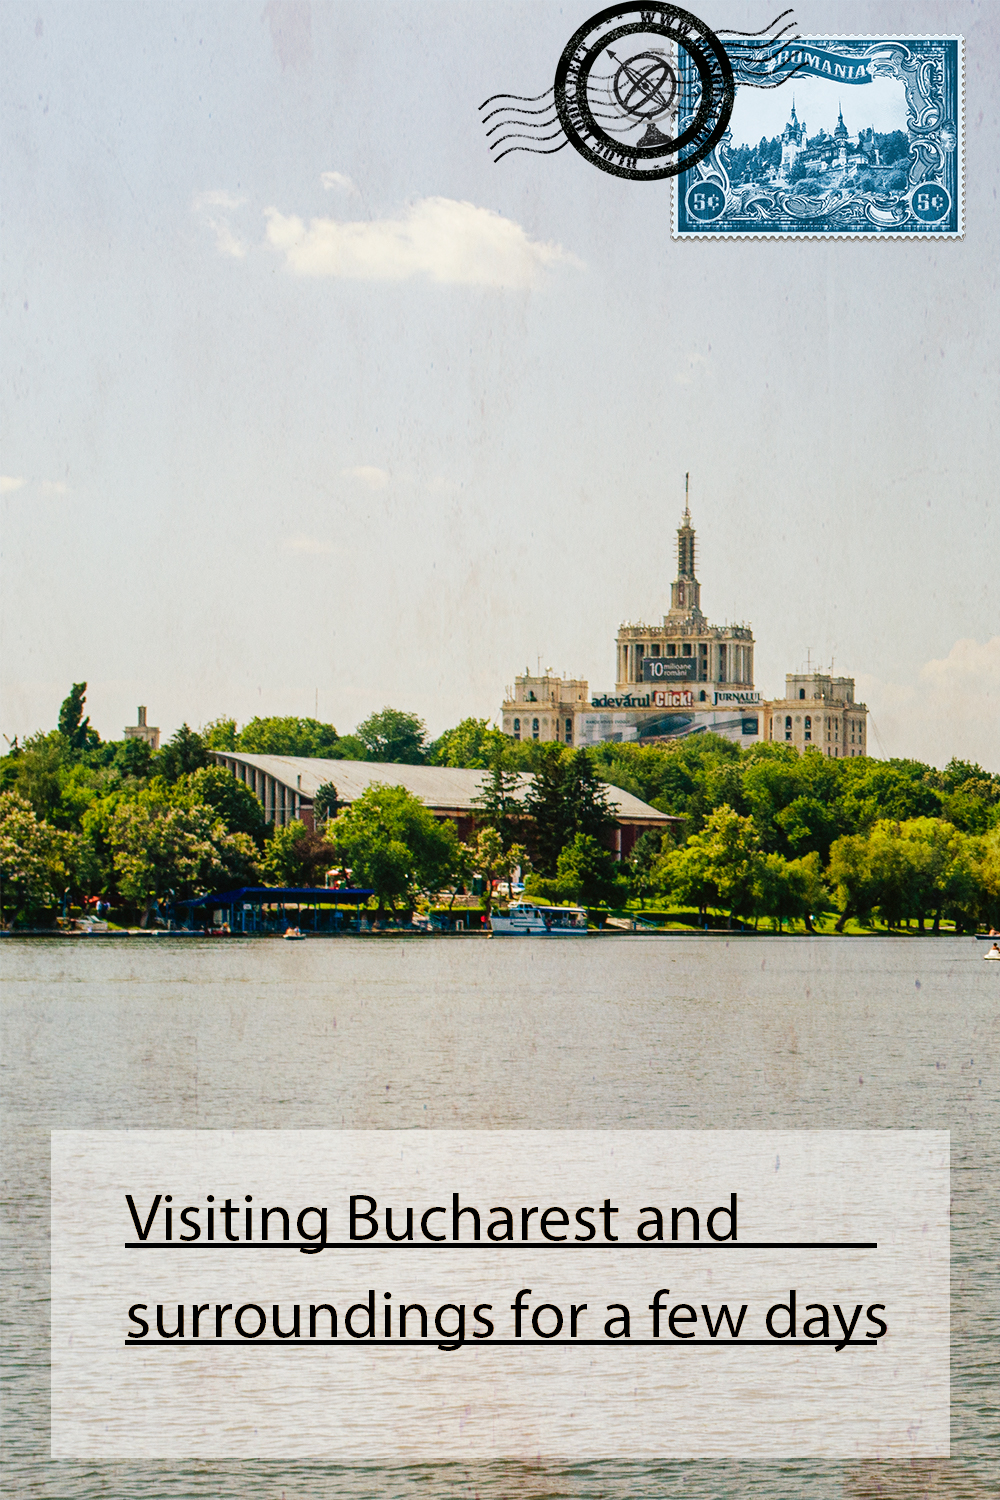 Visiting Bucharest and surroundings for a few days